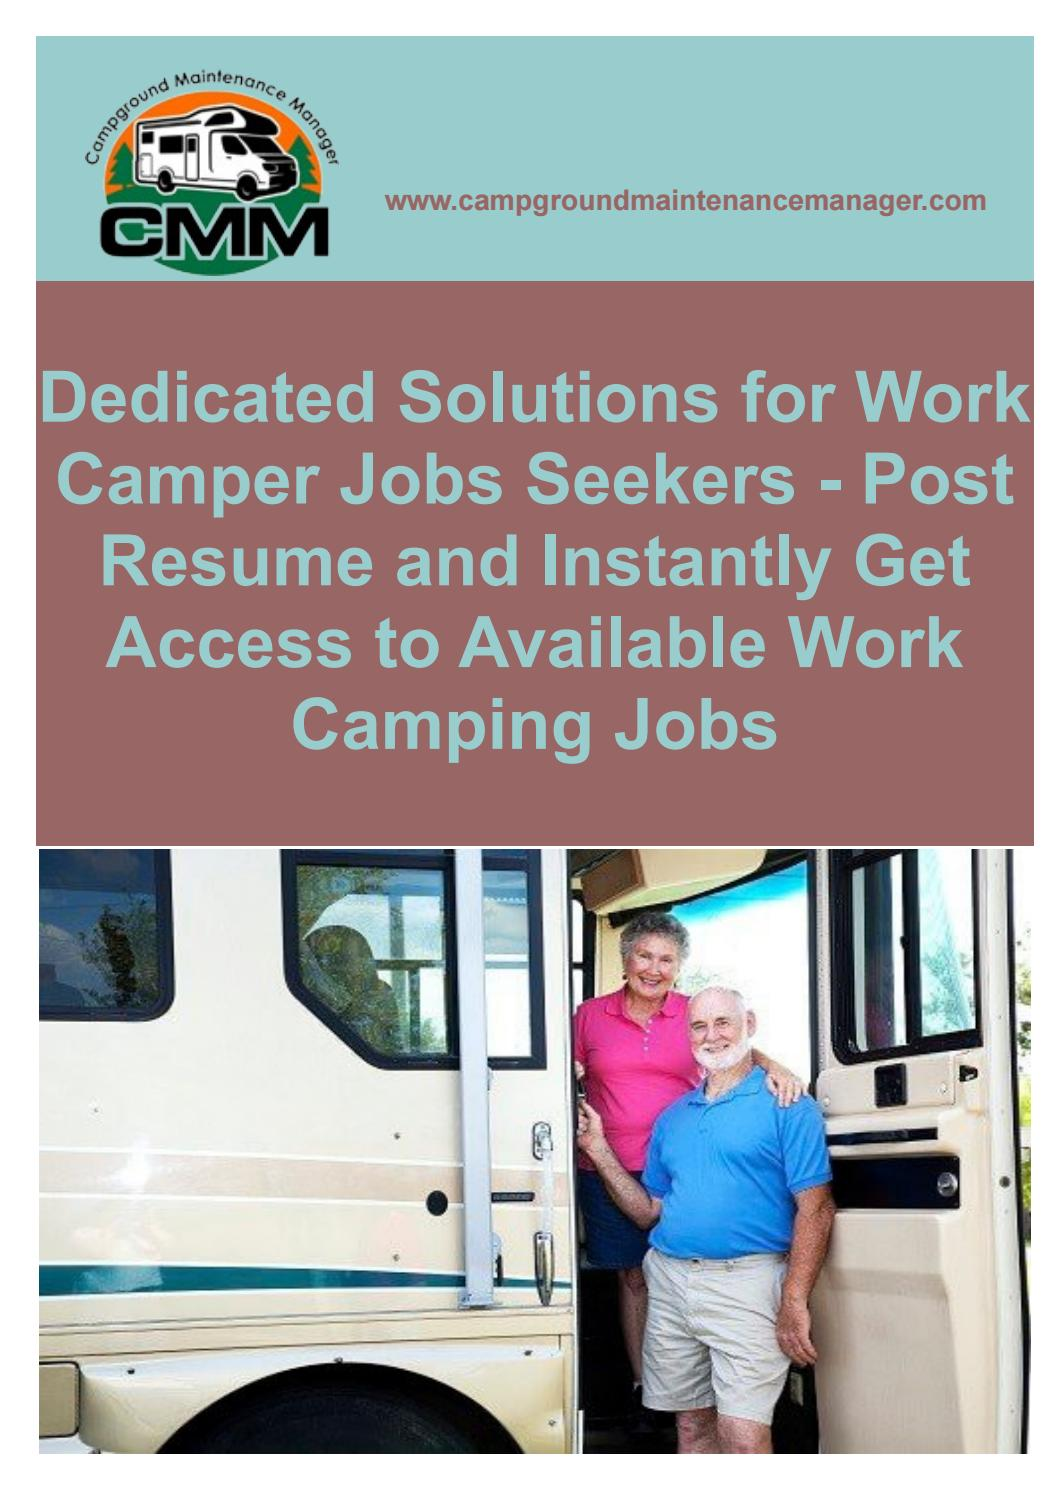 Dedicated solutions for work camper jobs seekers post resume and instantly get access to available w